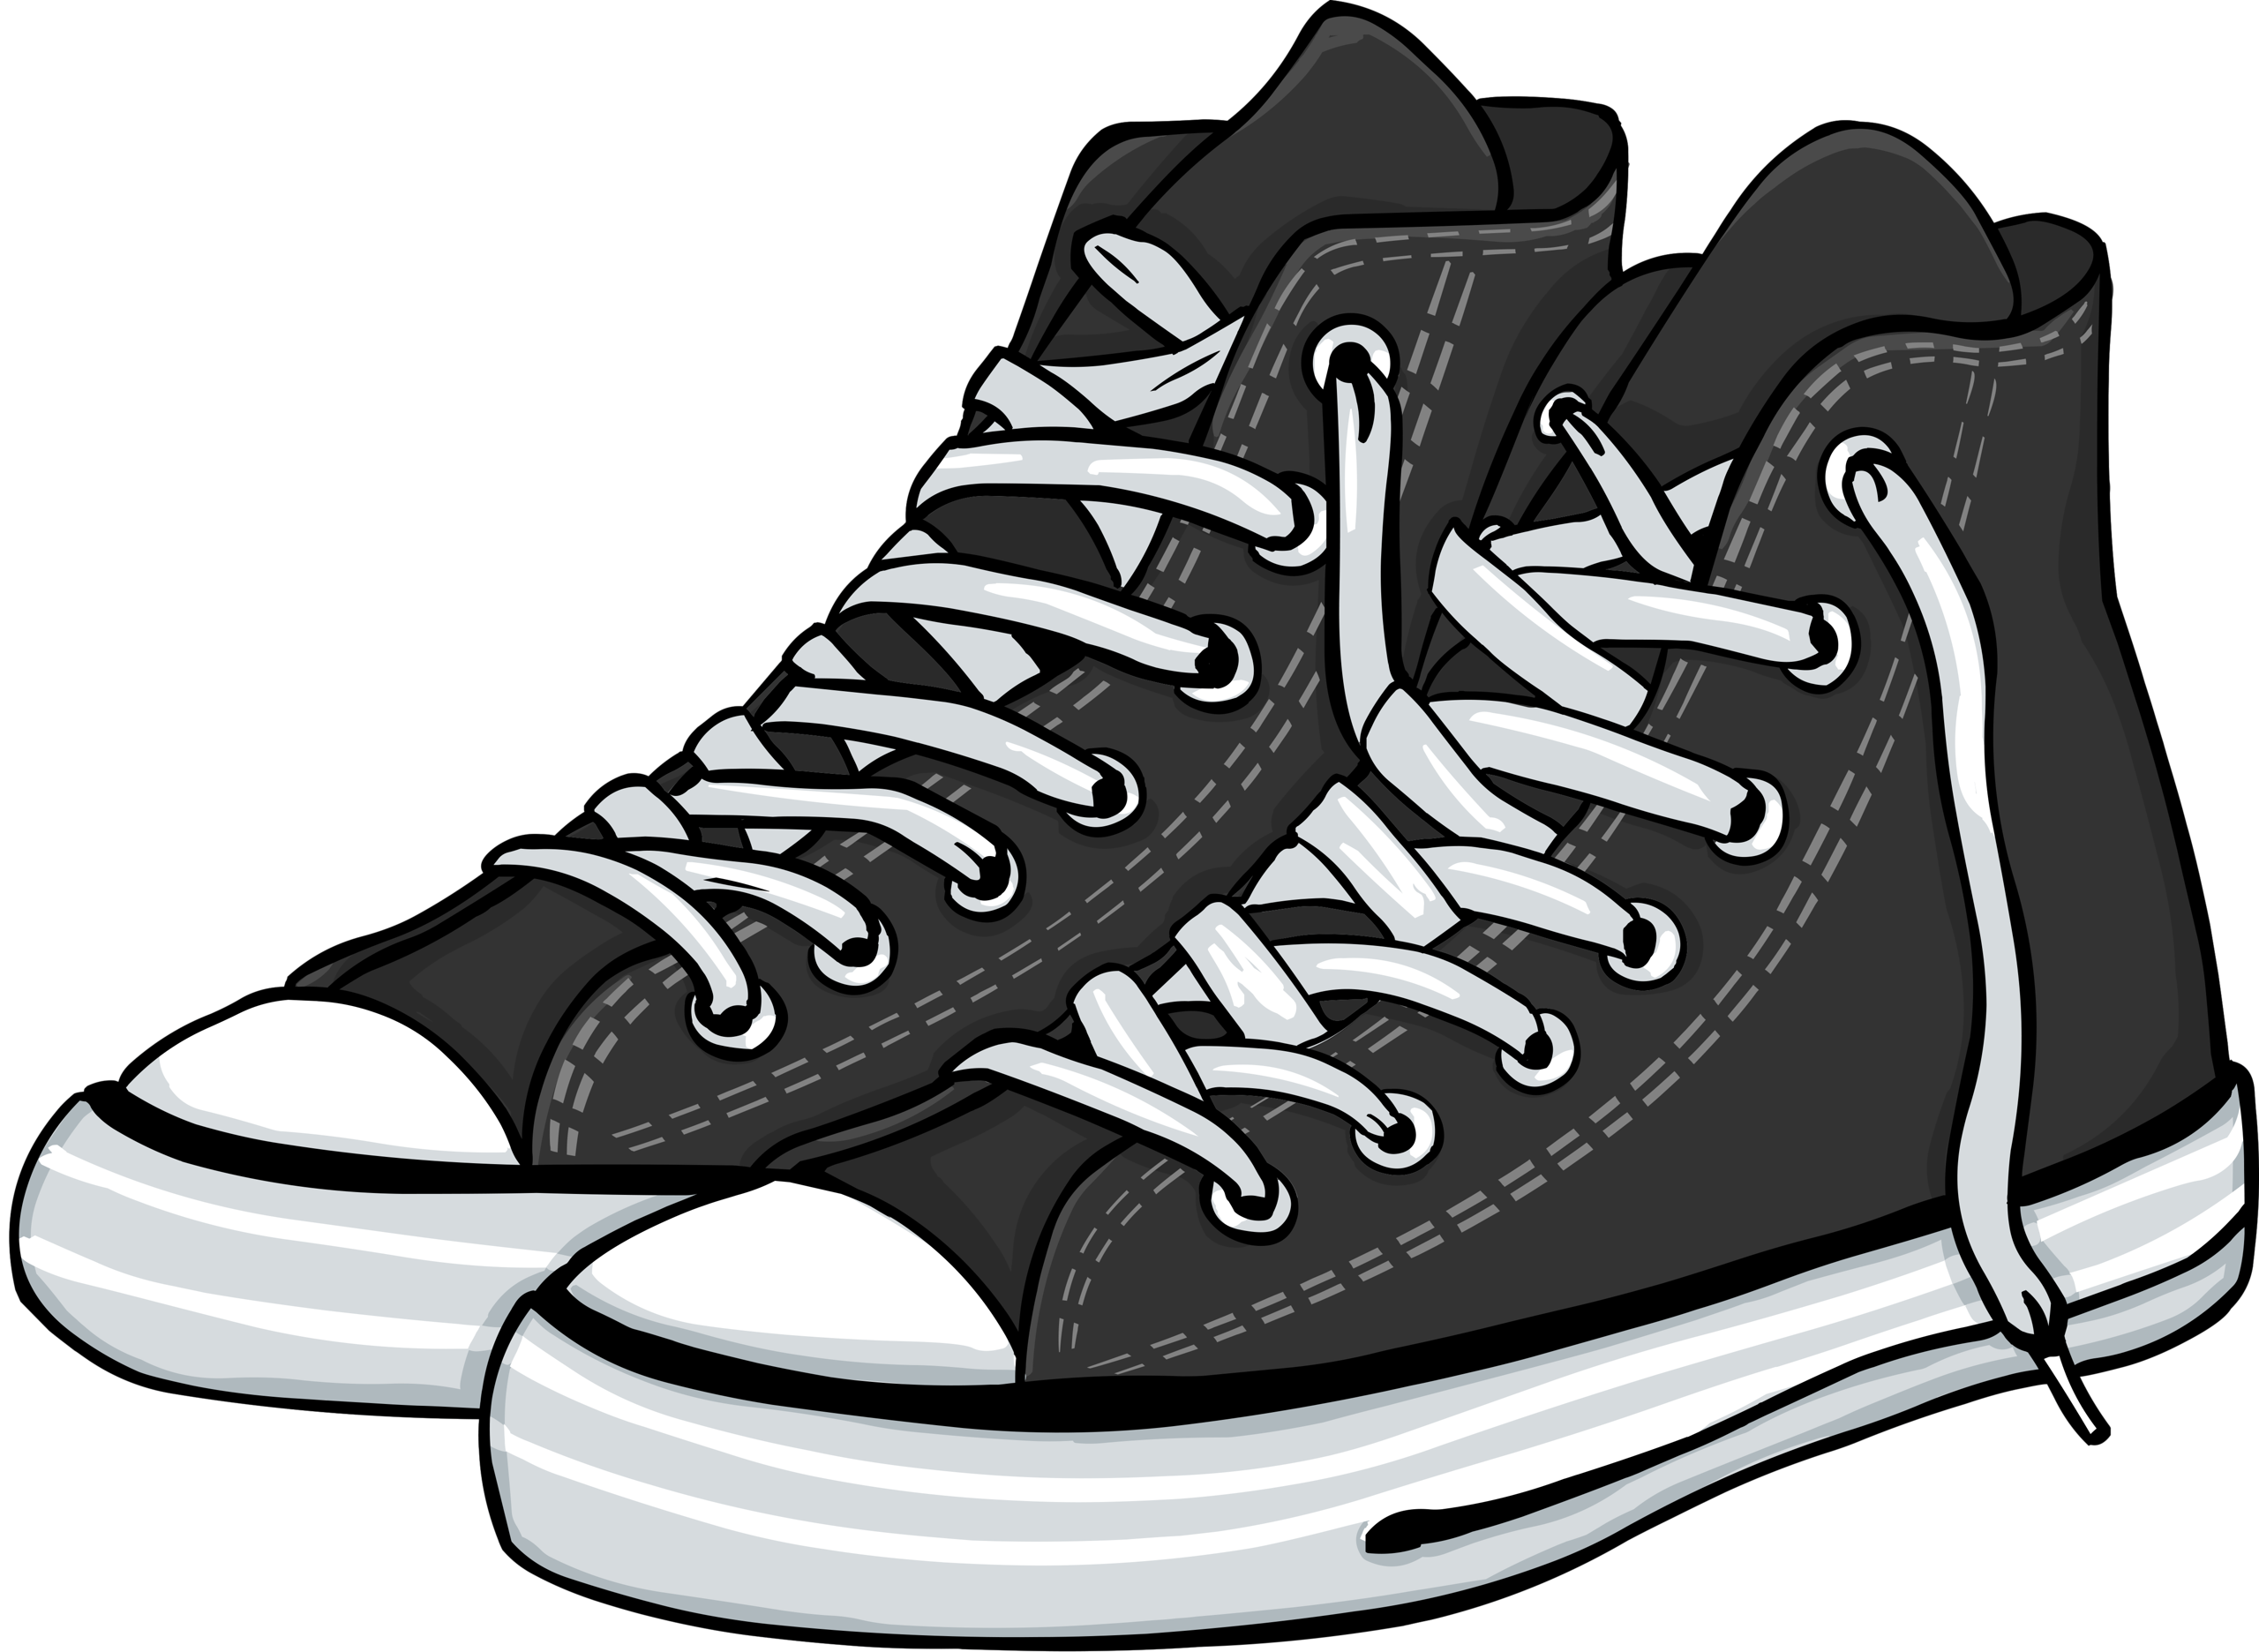 ddfd5484e1876 2560x1872 Collection Of Free Sneaker Drawing Shoe Converse Download On Ui Ex